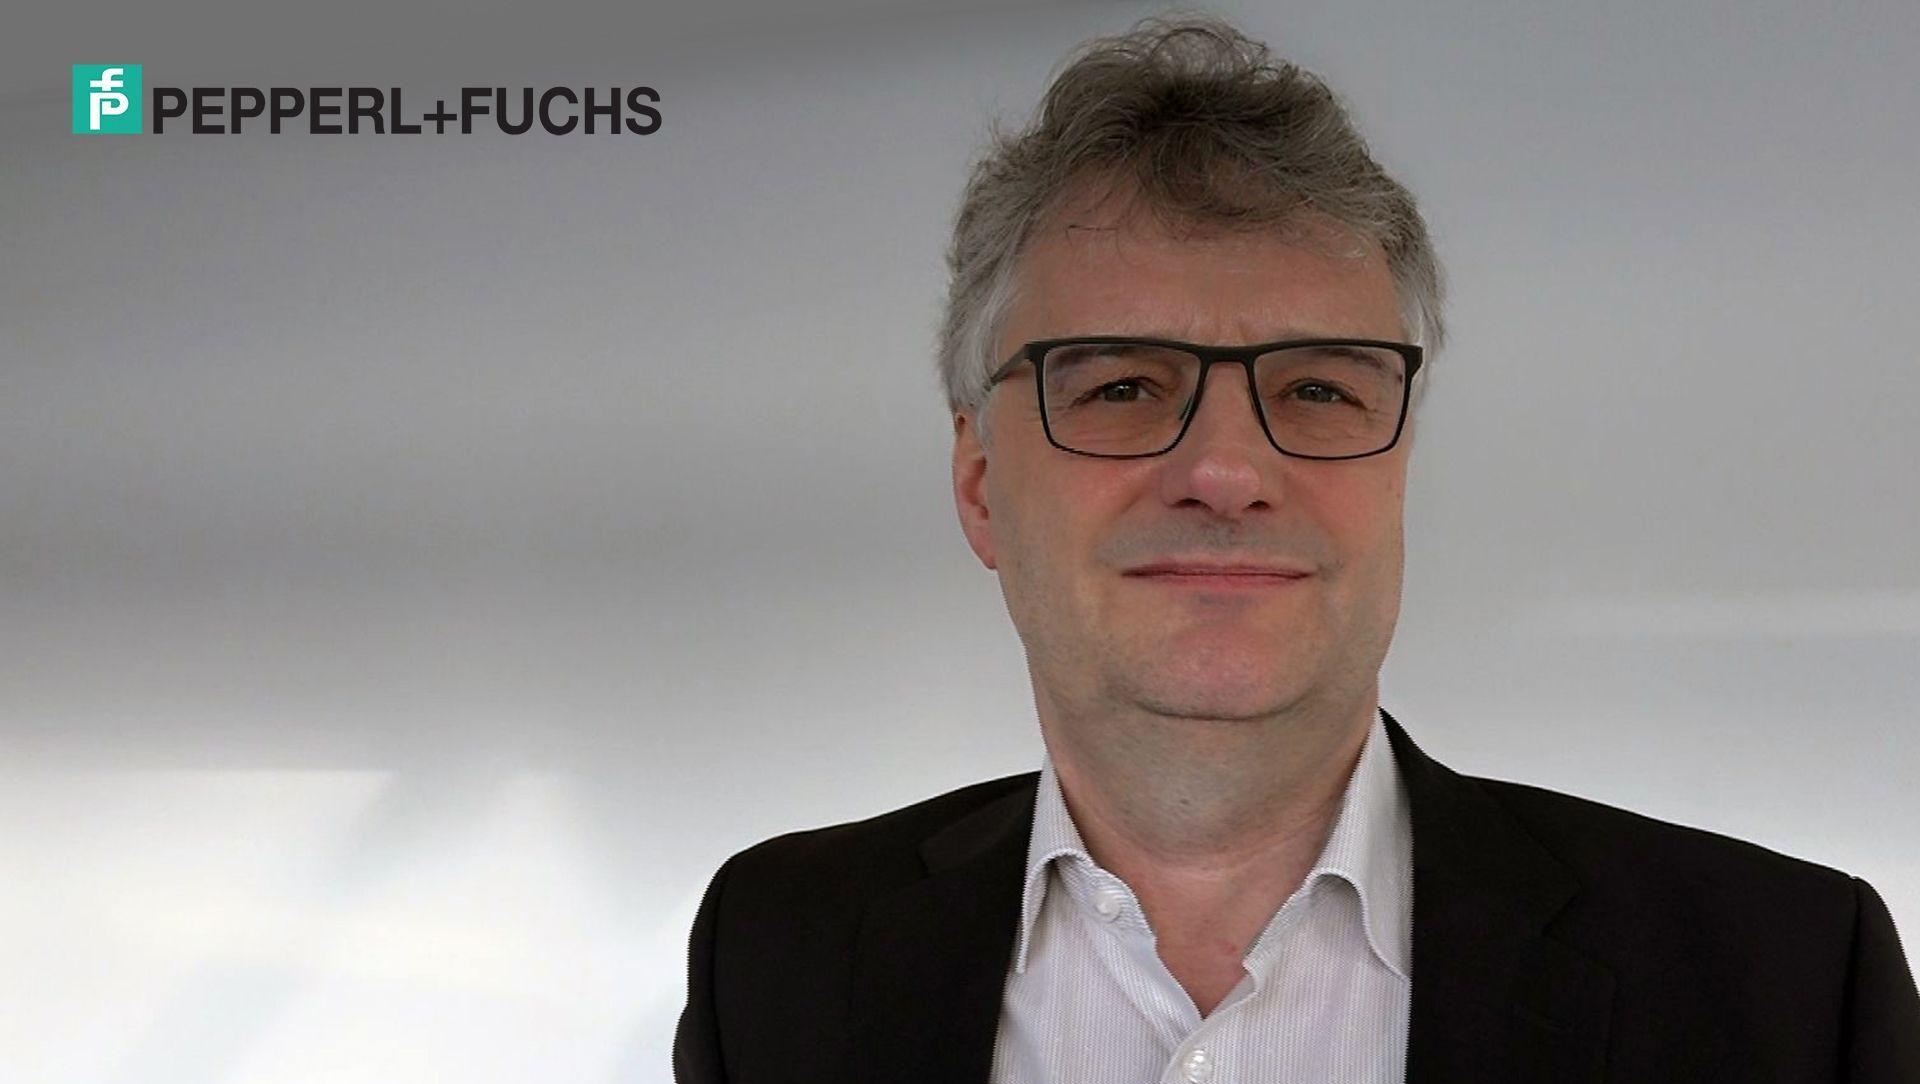 Pepperl + Fuchs: The time has come for Ethernet APL